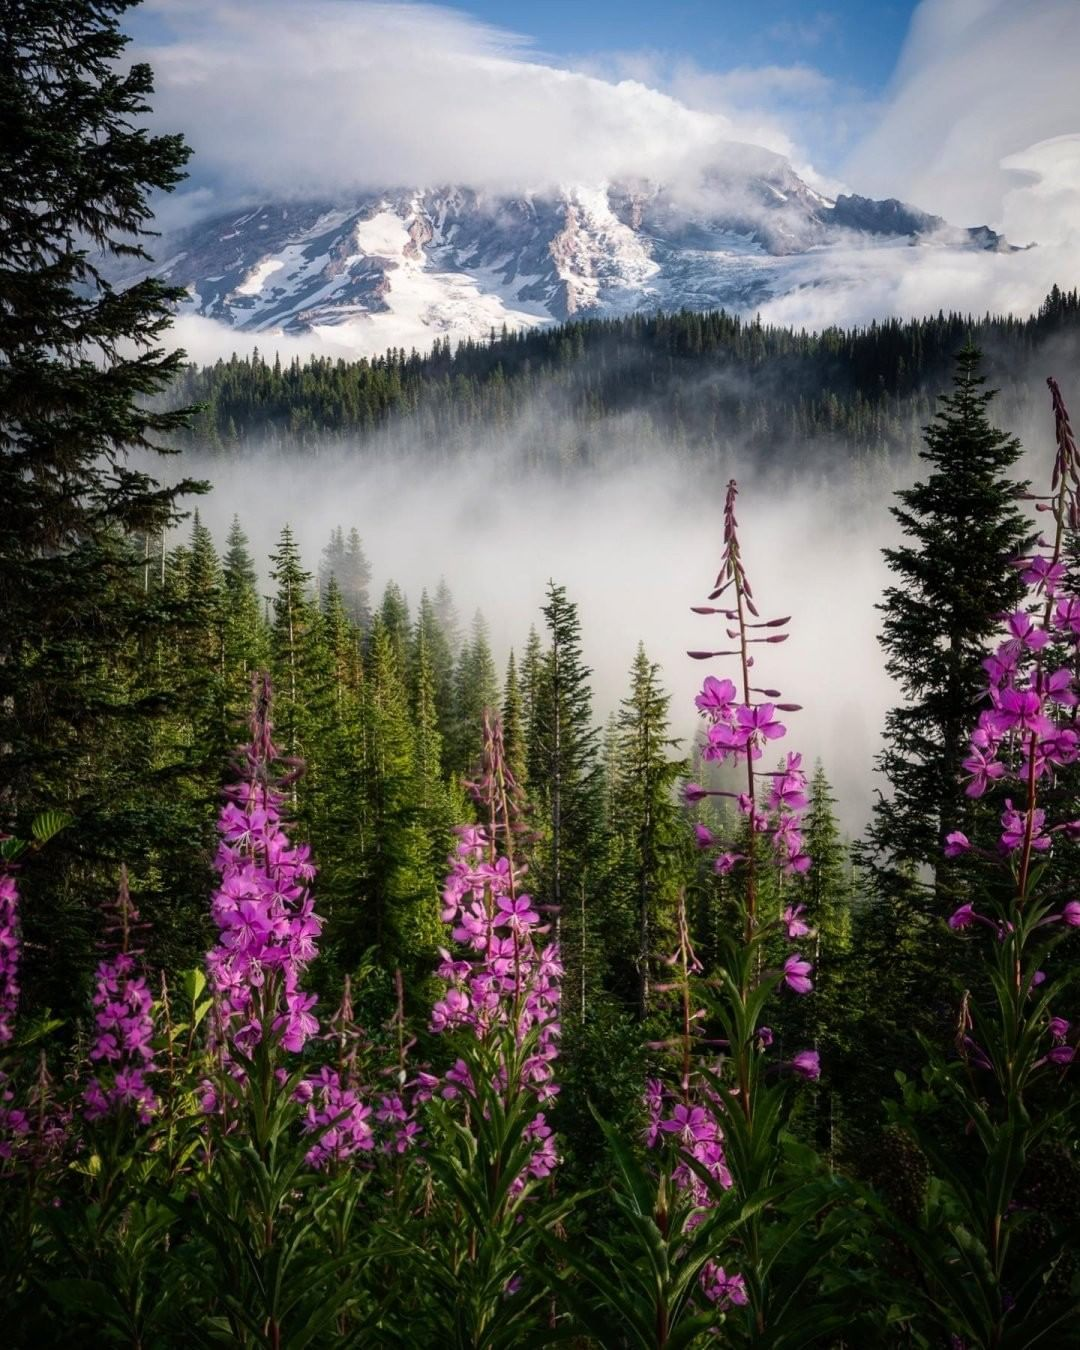 """National Geographic Your Shot on Instagram: """"Photo by Sam Austin @samsnaps77  I had a wonderful couple days visiting Mount Rainier recently. I was sad to see so many people leaving…"""""""